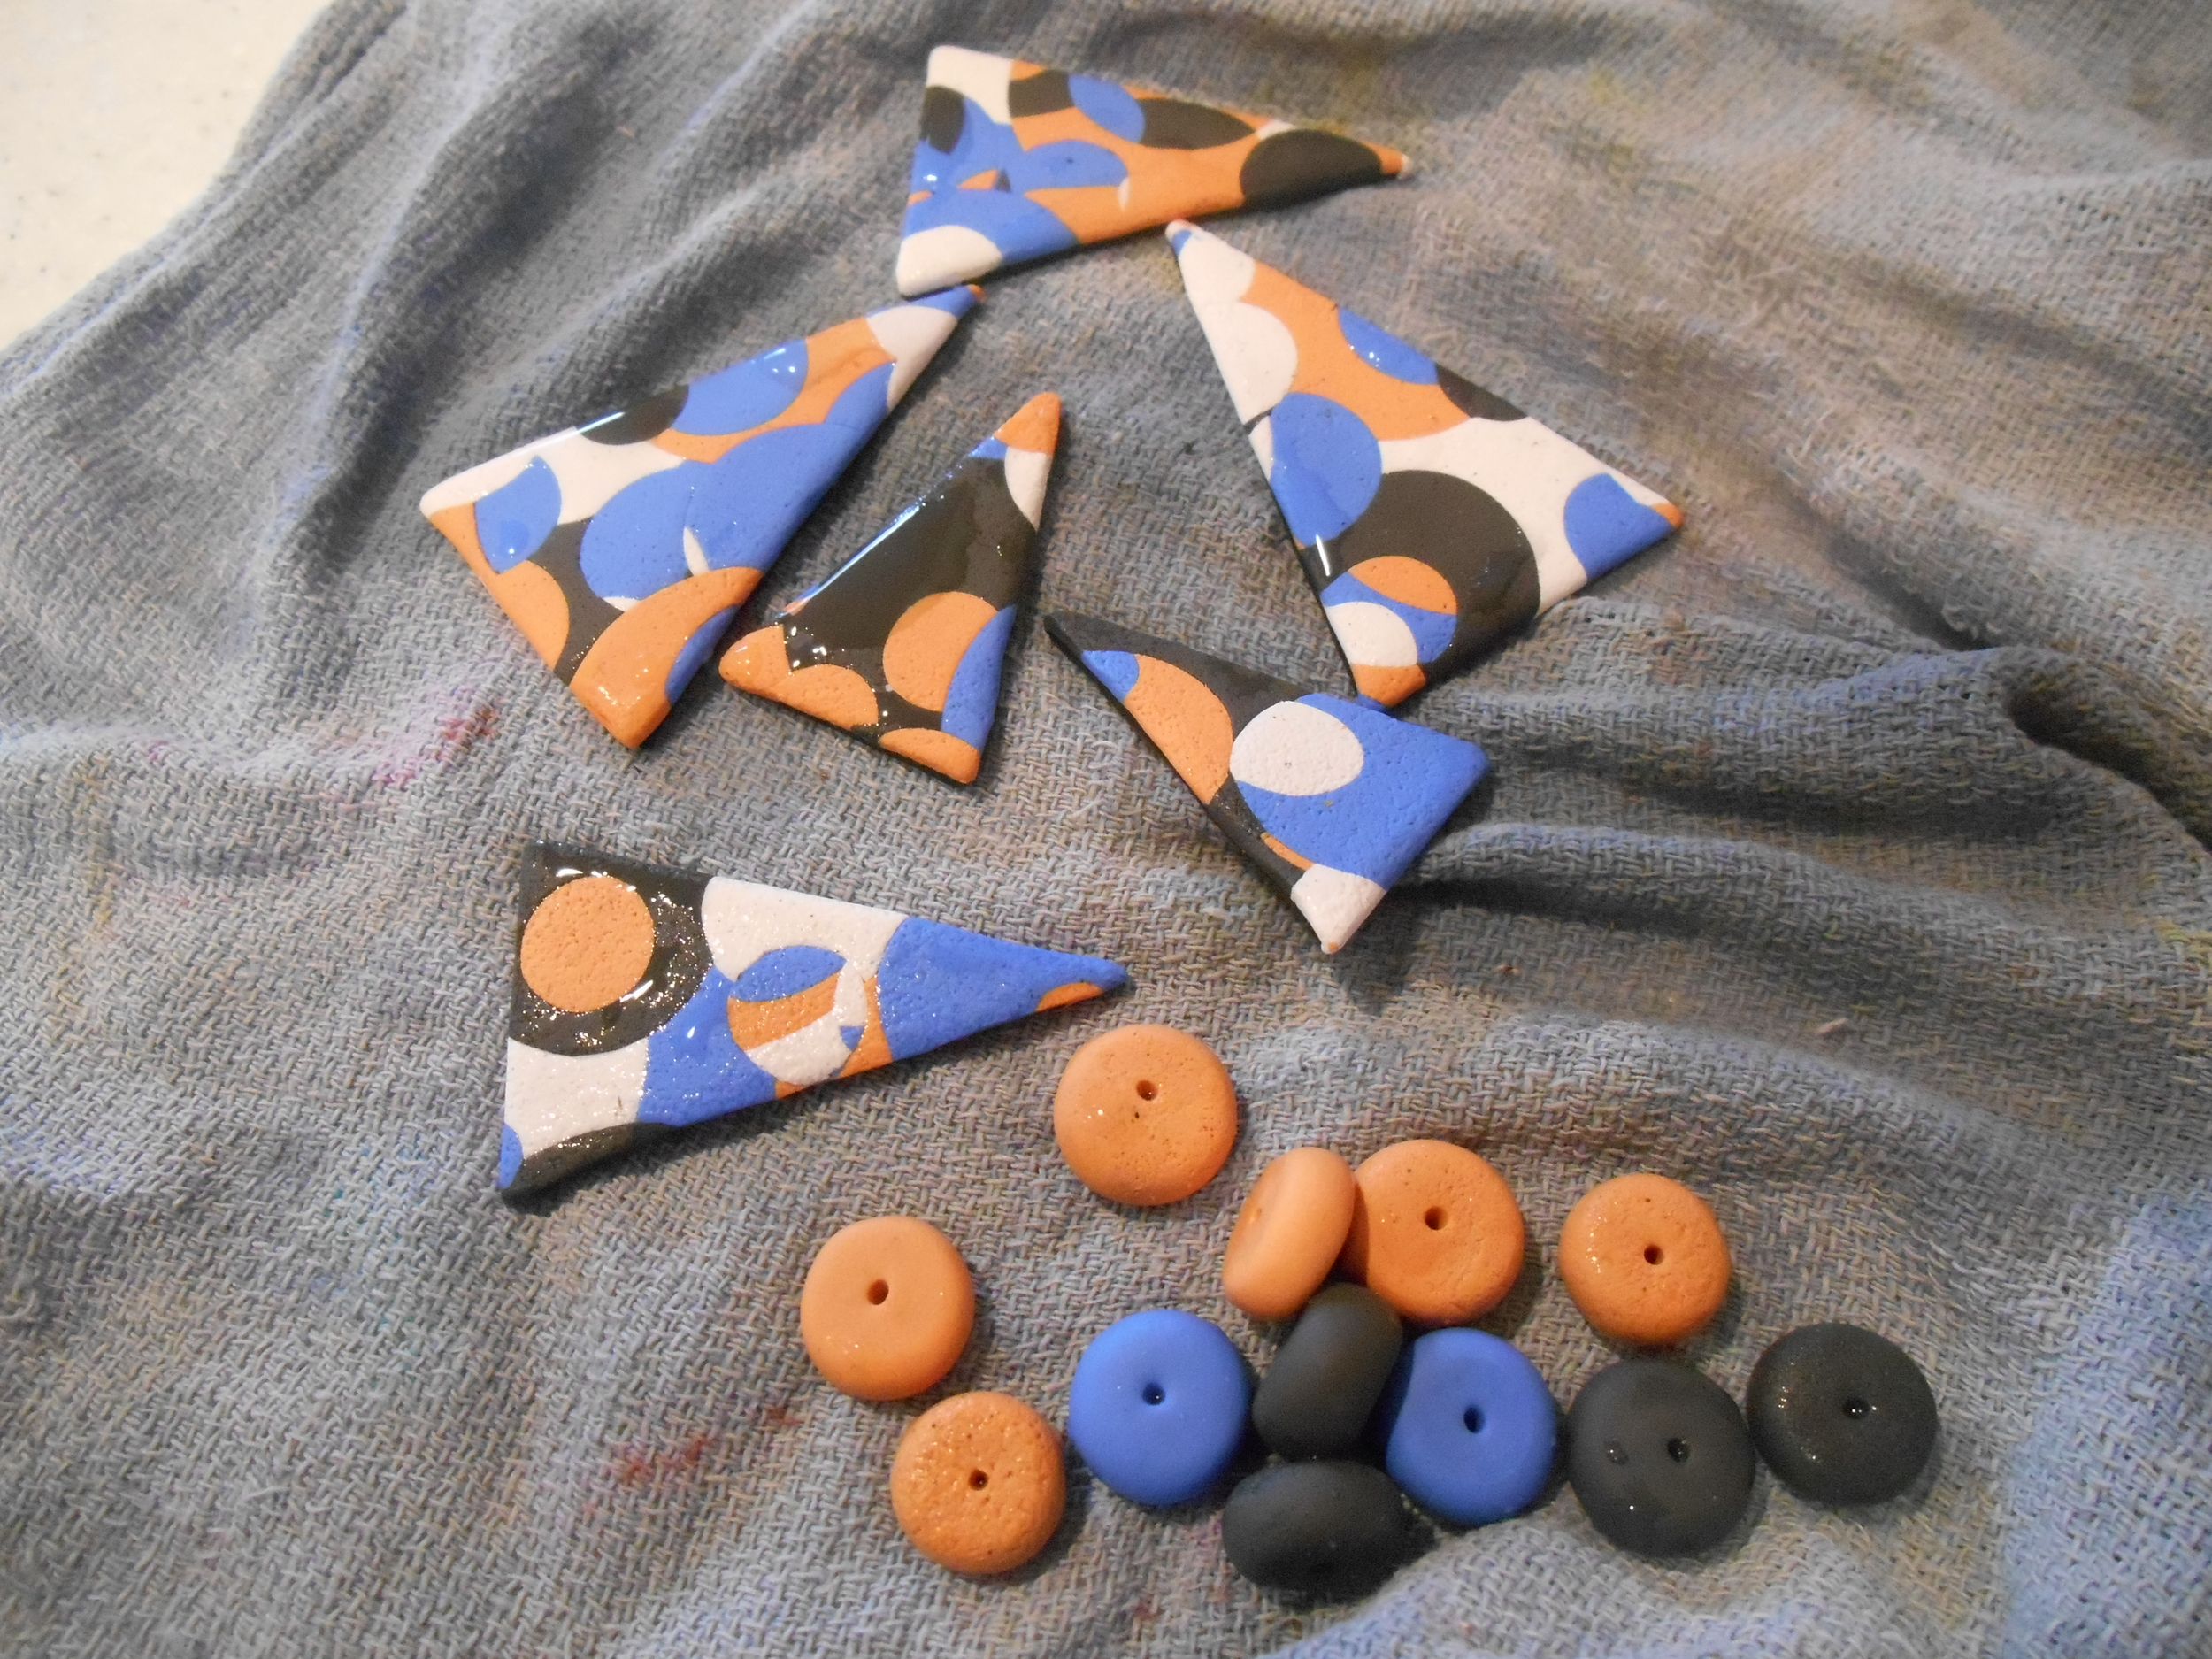 Here are the fired and bathed pieces- I decided to make some textured beads as well.  I think I'm going to need them for the overall length.  I went with a stone gray, a periwinkle blue, some soft peach and white.  I hand blended to achieve my colors.